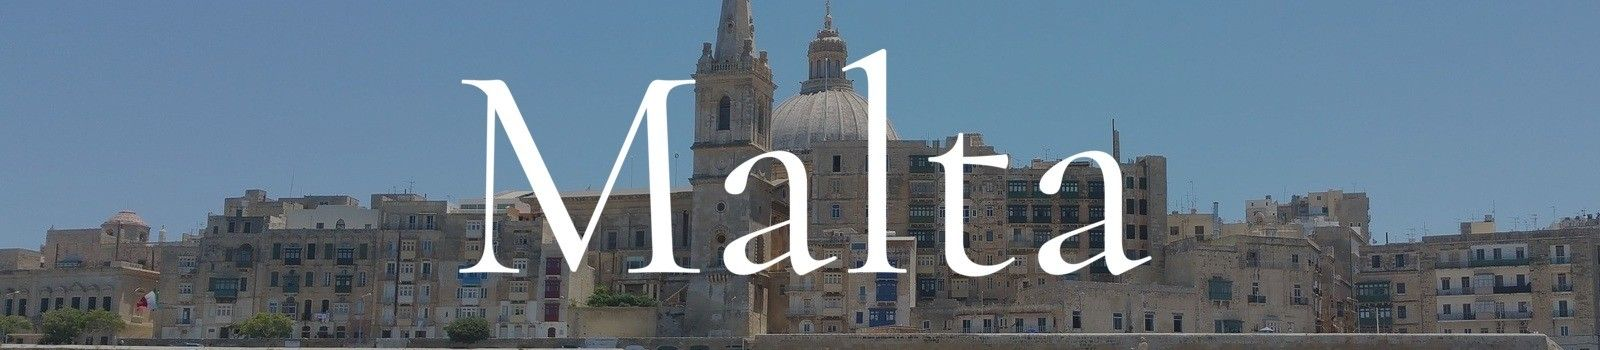 Malta Church